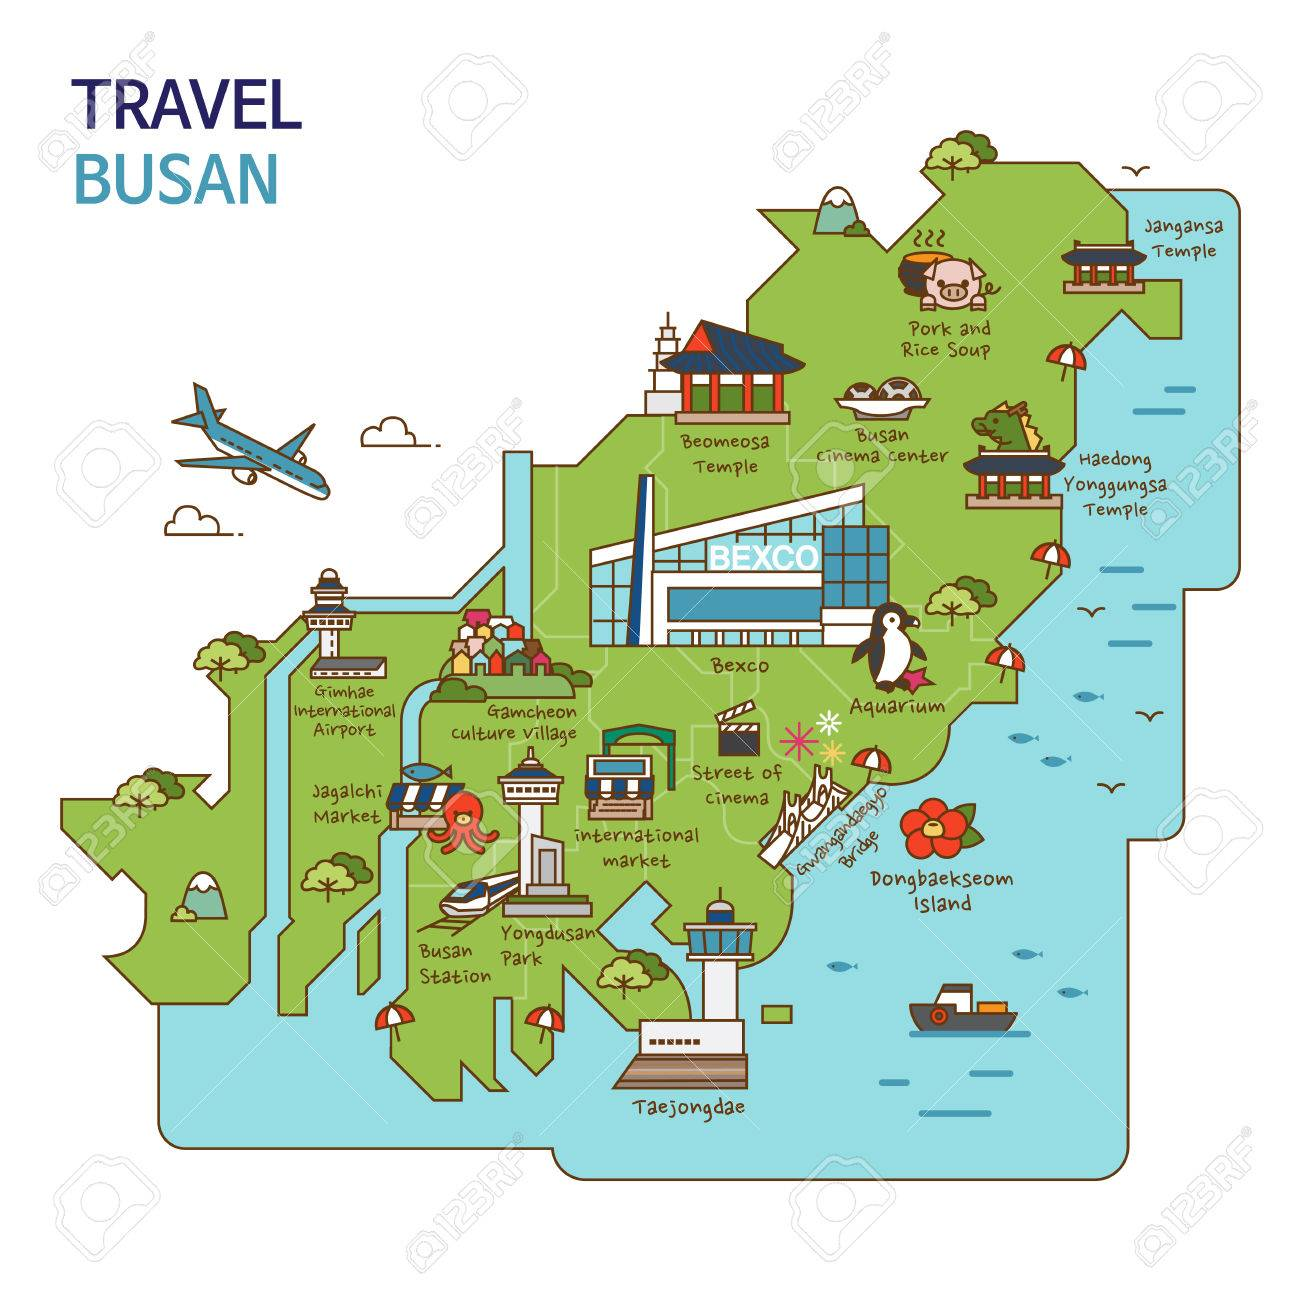 Subway Map Of Busan.City Tour Travel Map Illustration Busan Pusan City South Korea